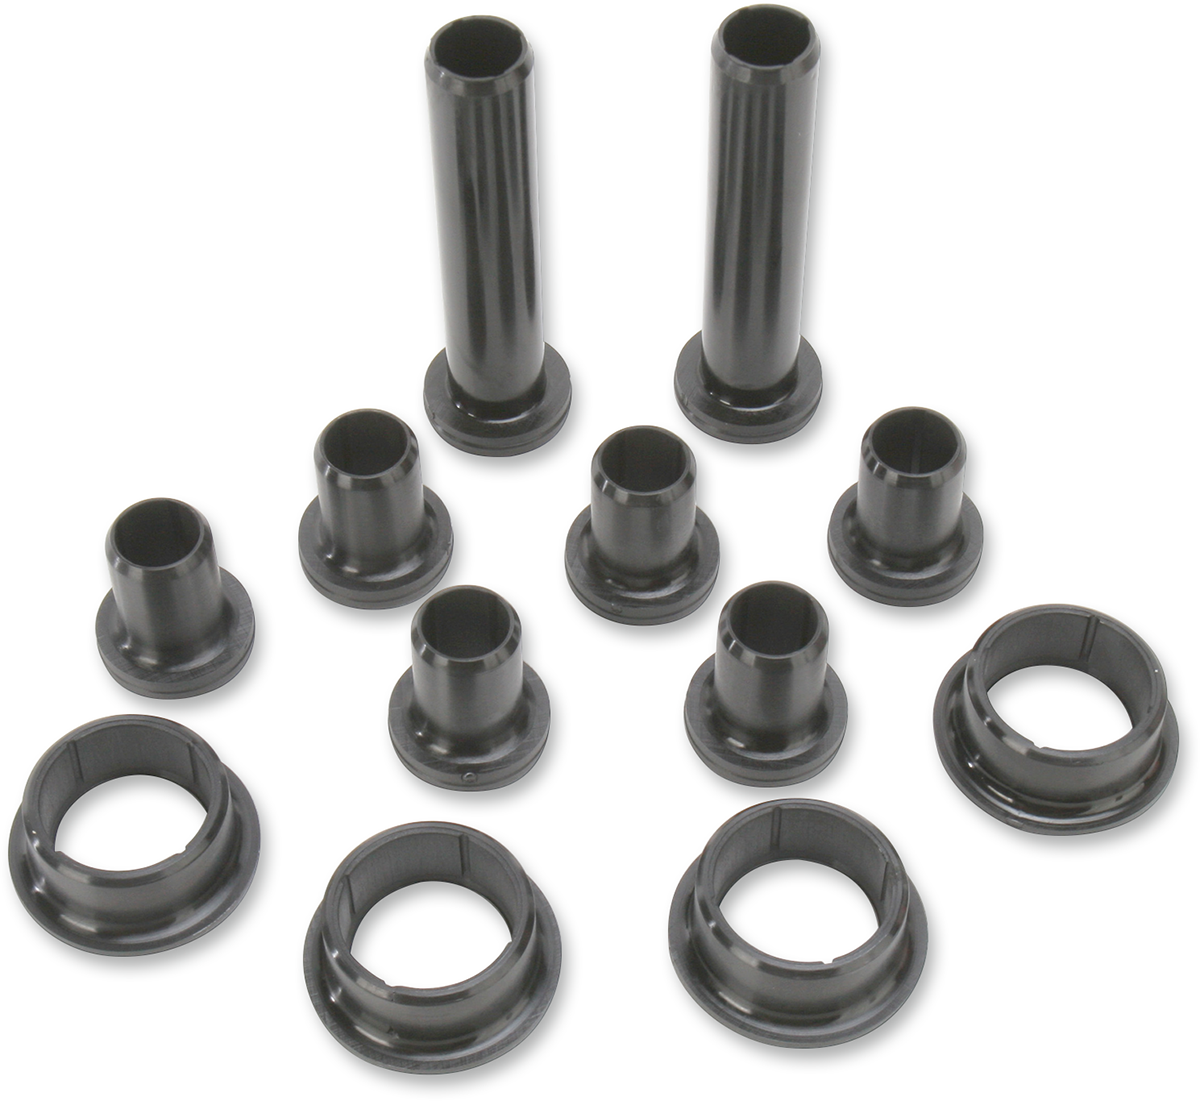 Moose Black Rear Independent Suspension Bushing Kit for 97-02 Polaris Sportsman